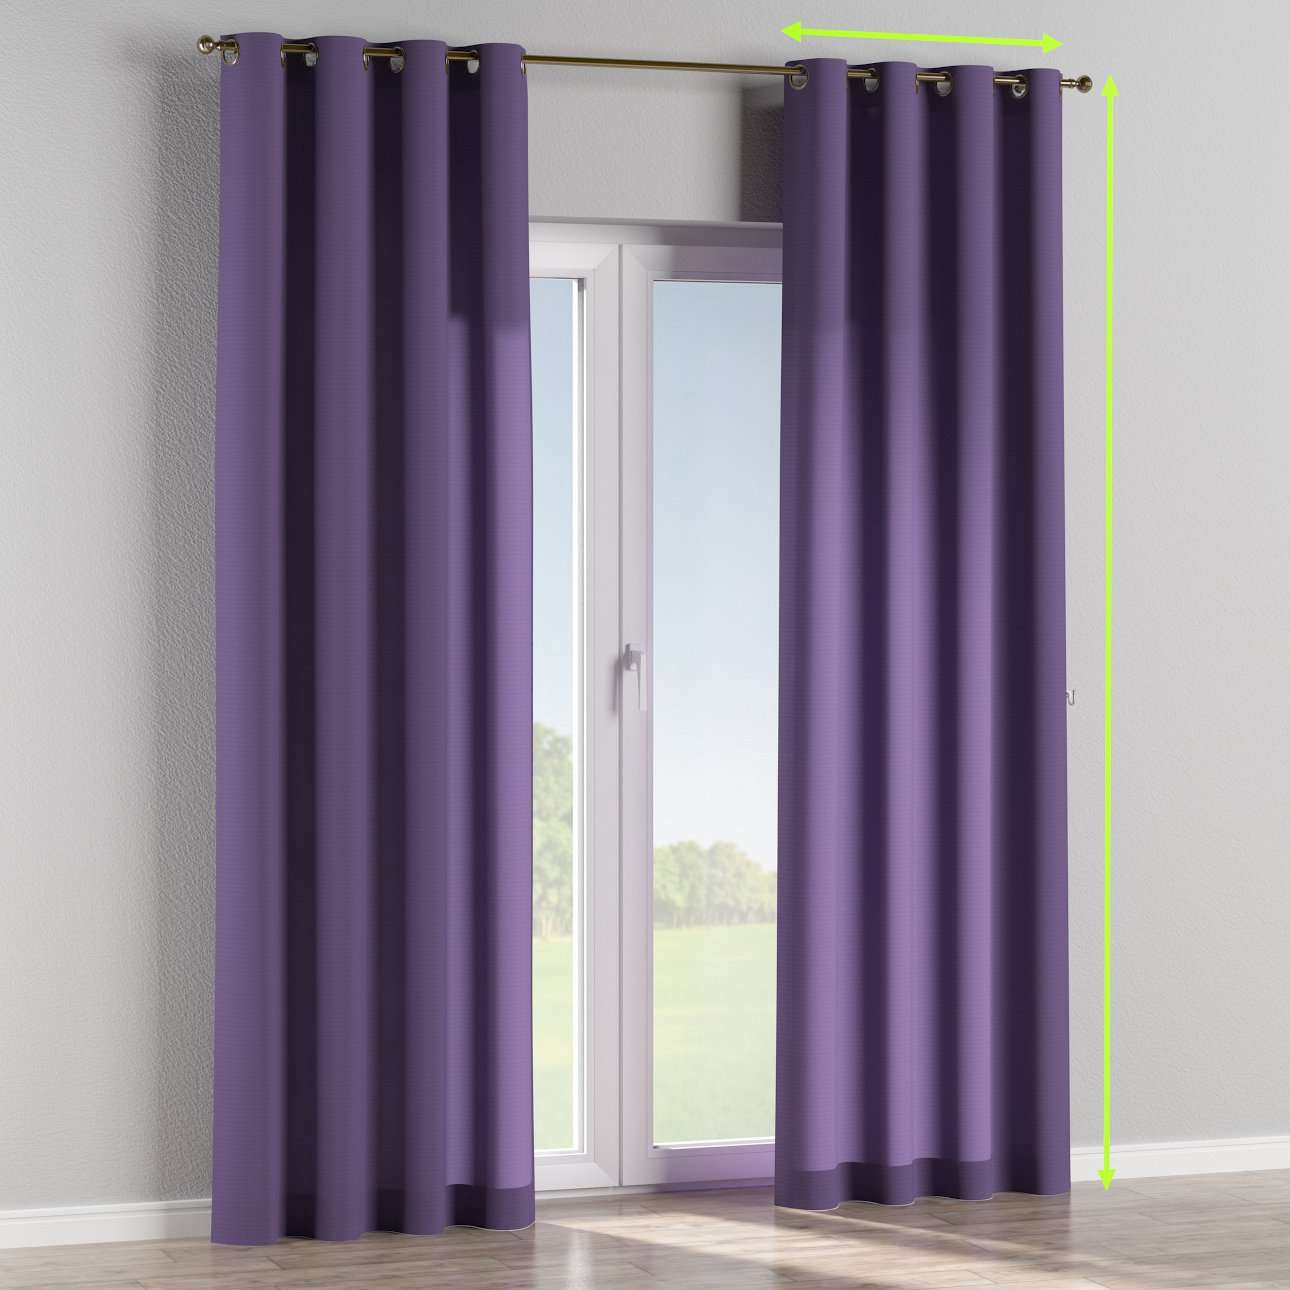 Eyelet curtains in collection Jupiter, fabric: 127-75